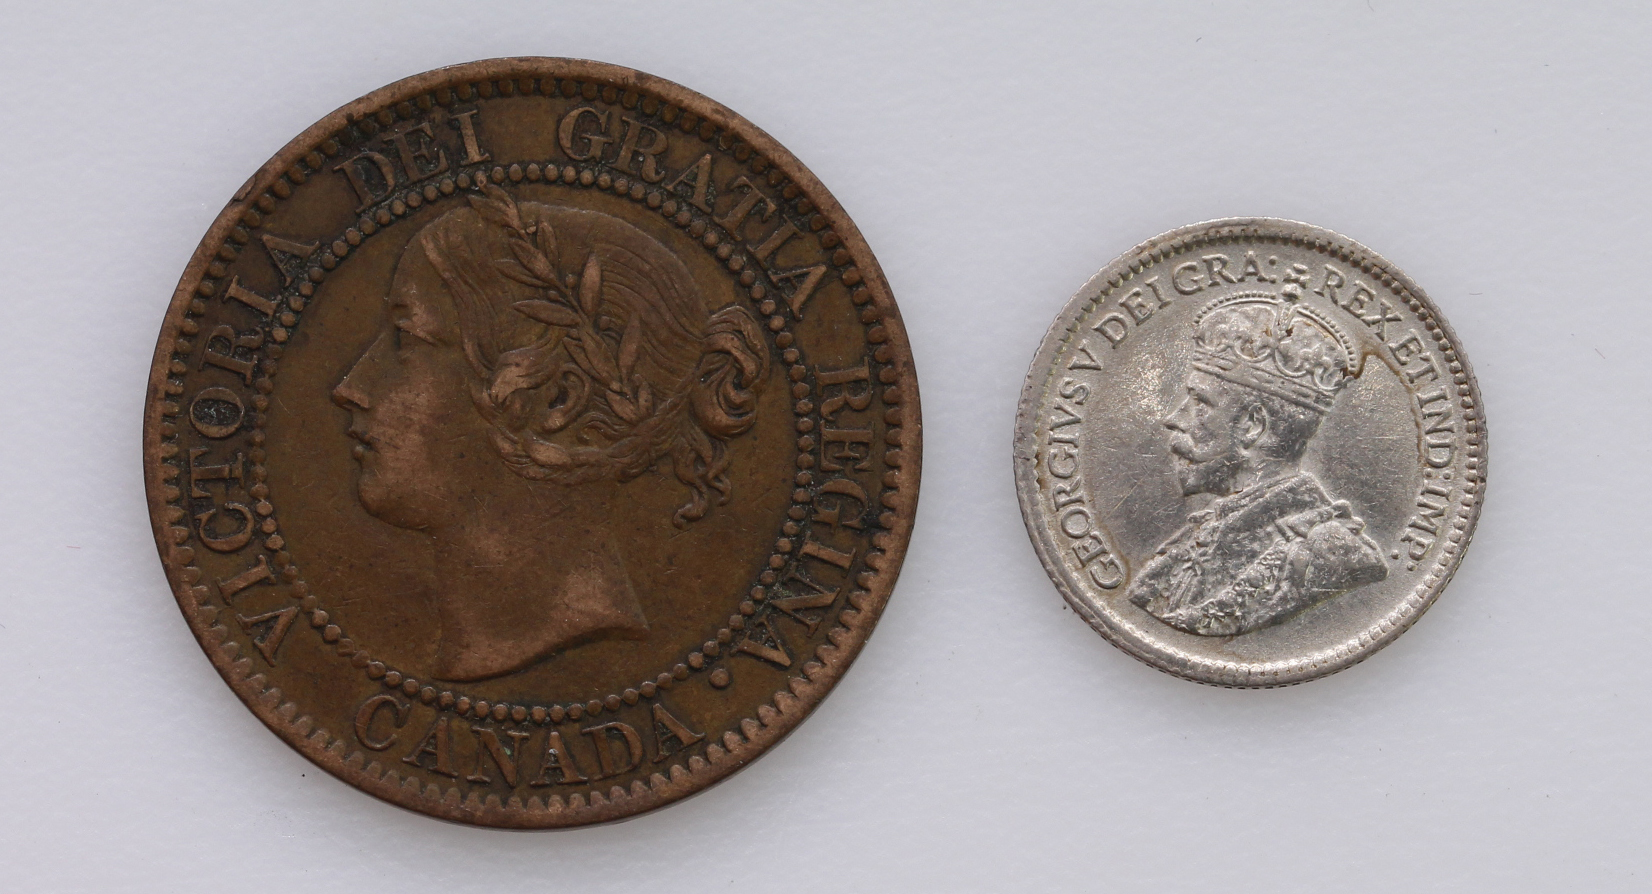 Canada (2): 5 Cents 1915 nEF, and One Cent 1858 medal alignment, VF